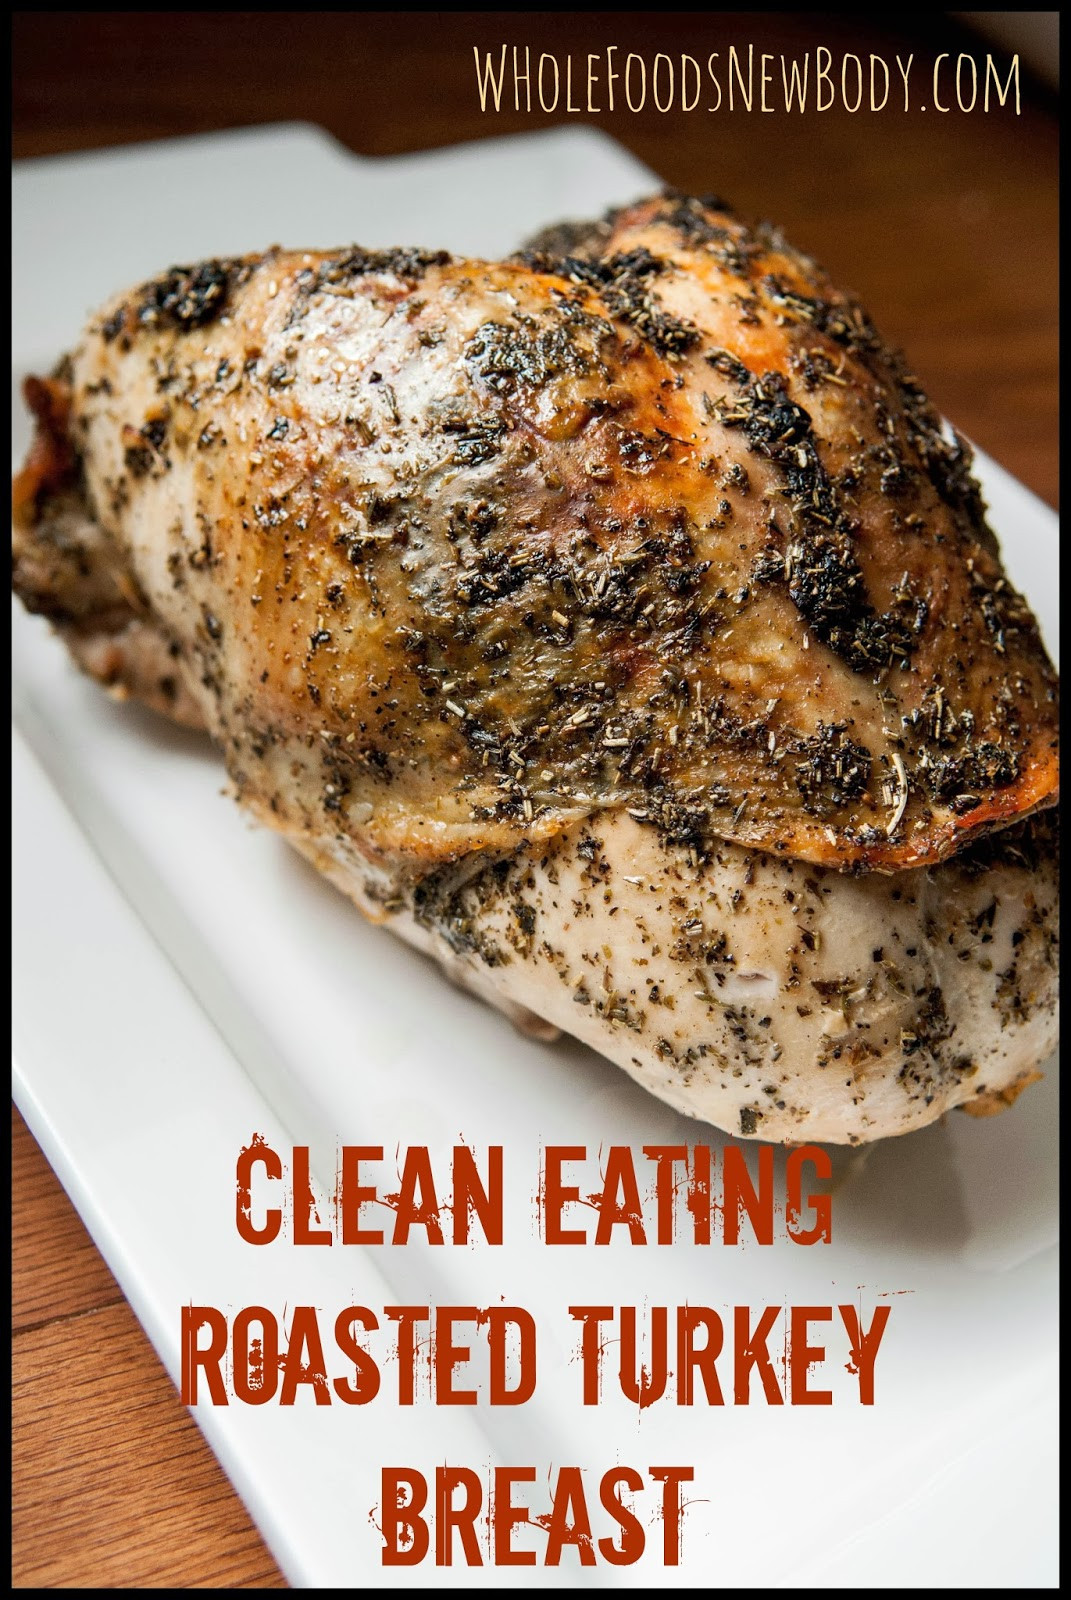 Whole Foods Thanksgiving Turkey  Whole Foods New Body Clean Eating Roasted Turkey Breast